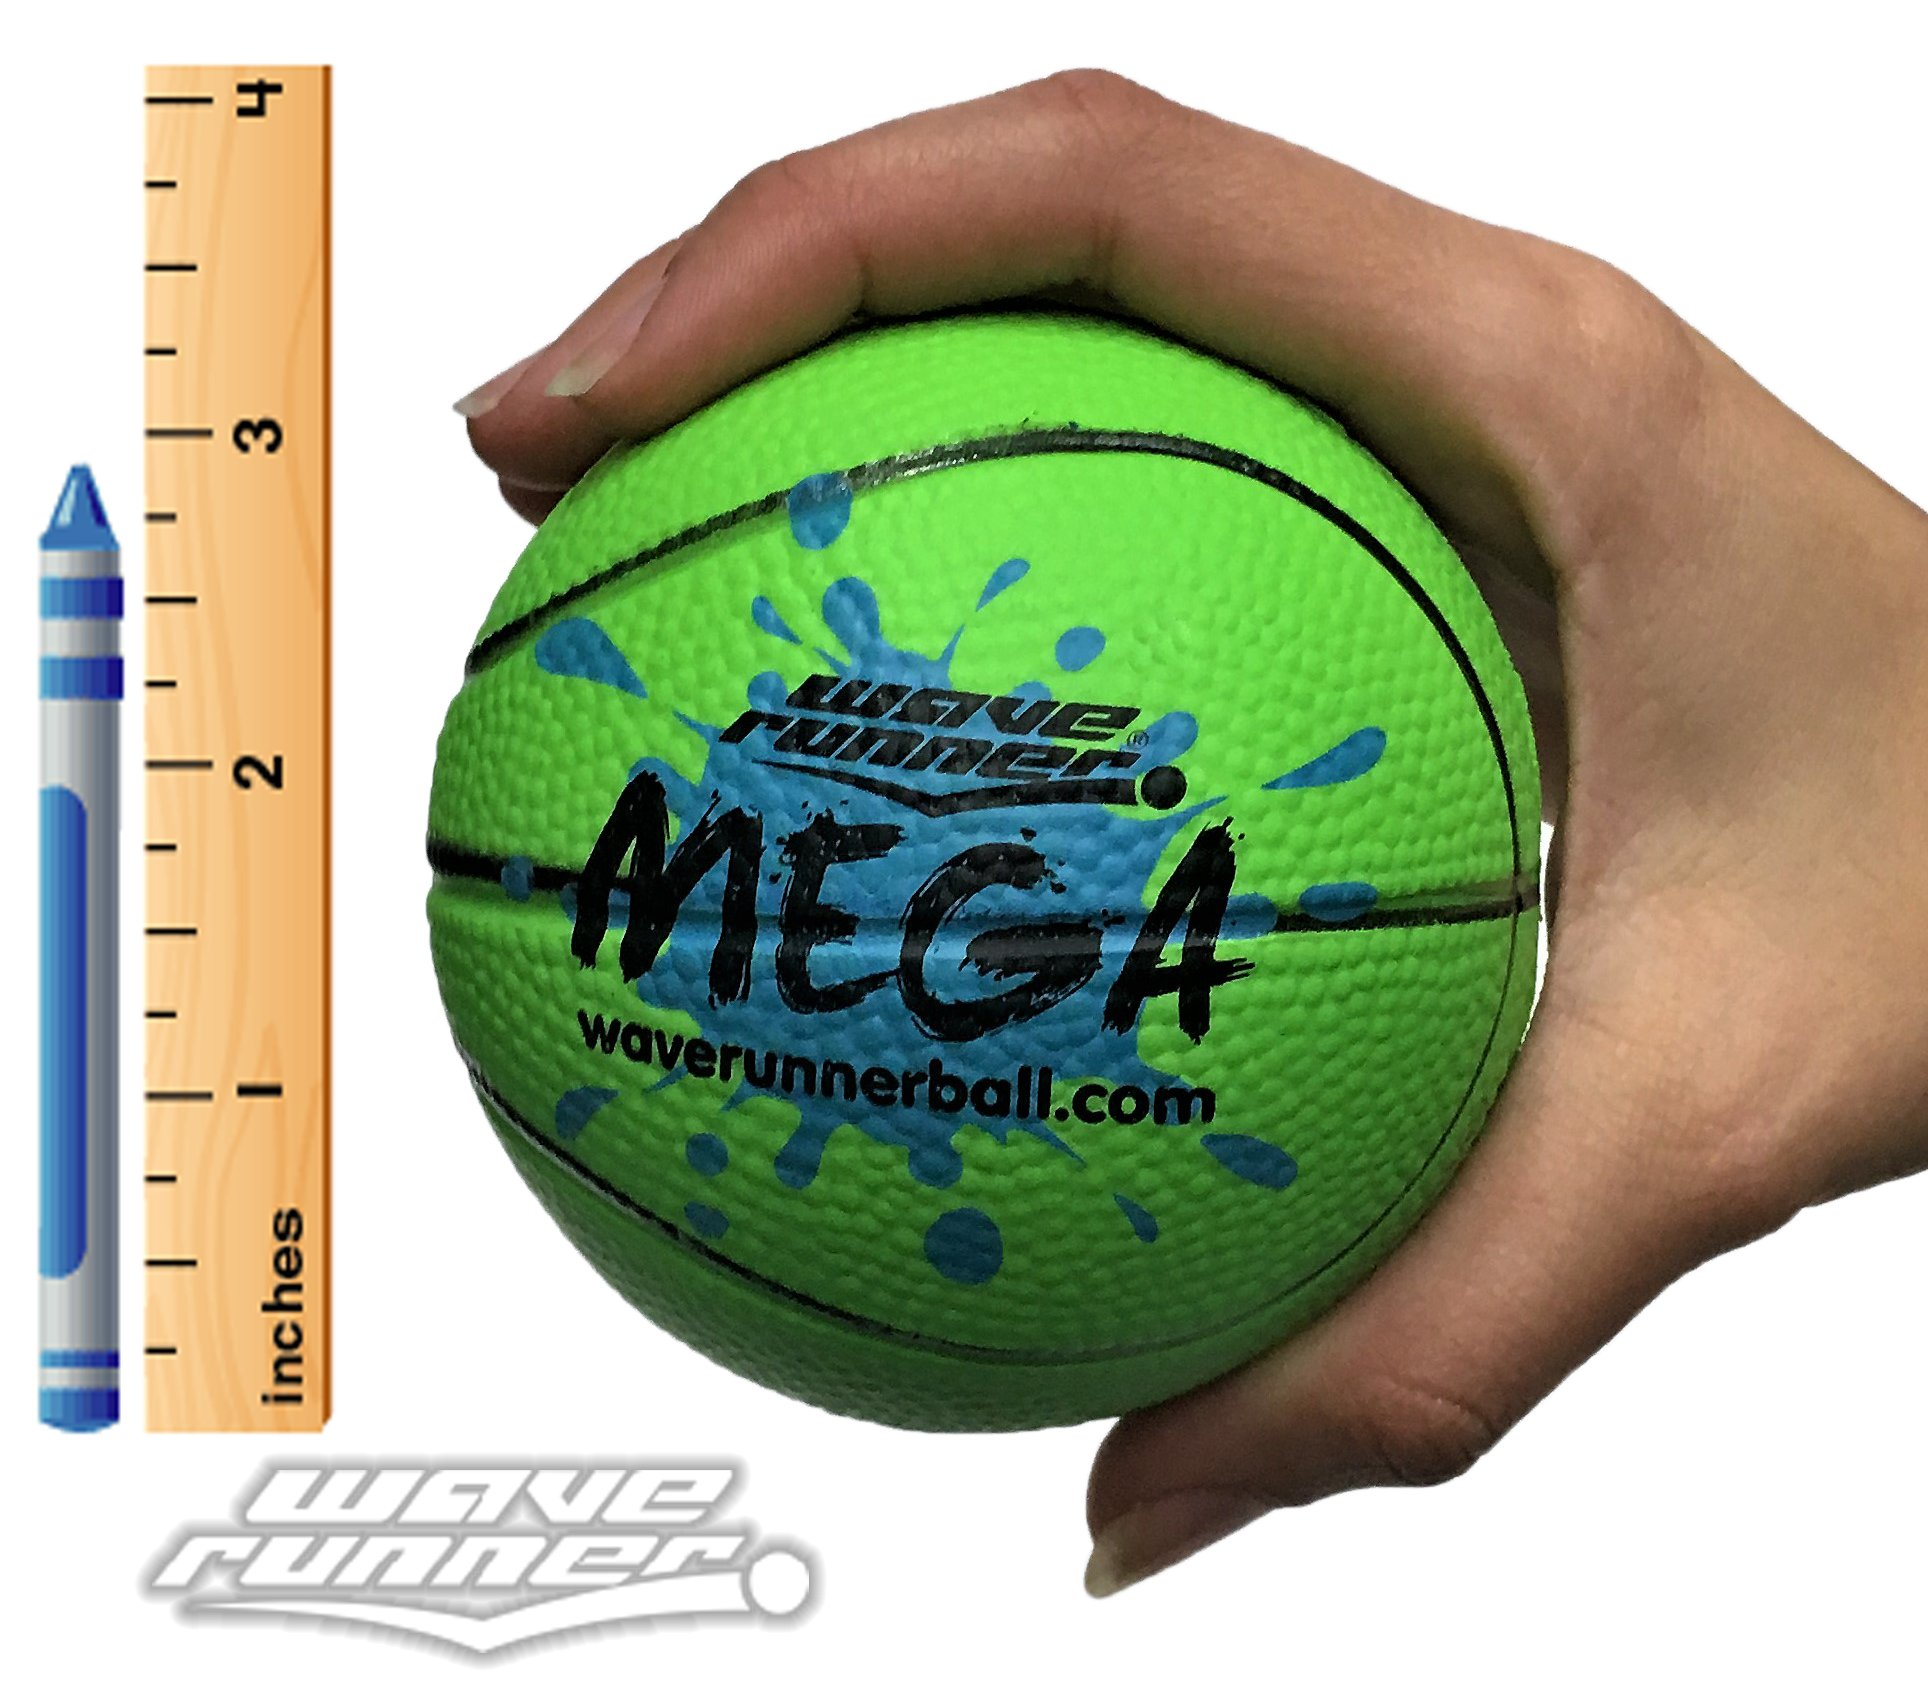 Wave Runner Mega Sports Miniature Basketball 3.5'' Waterproof Bouncing Ball for All Ages (Green) by Wave Runner